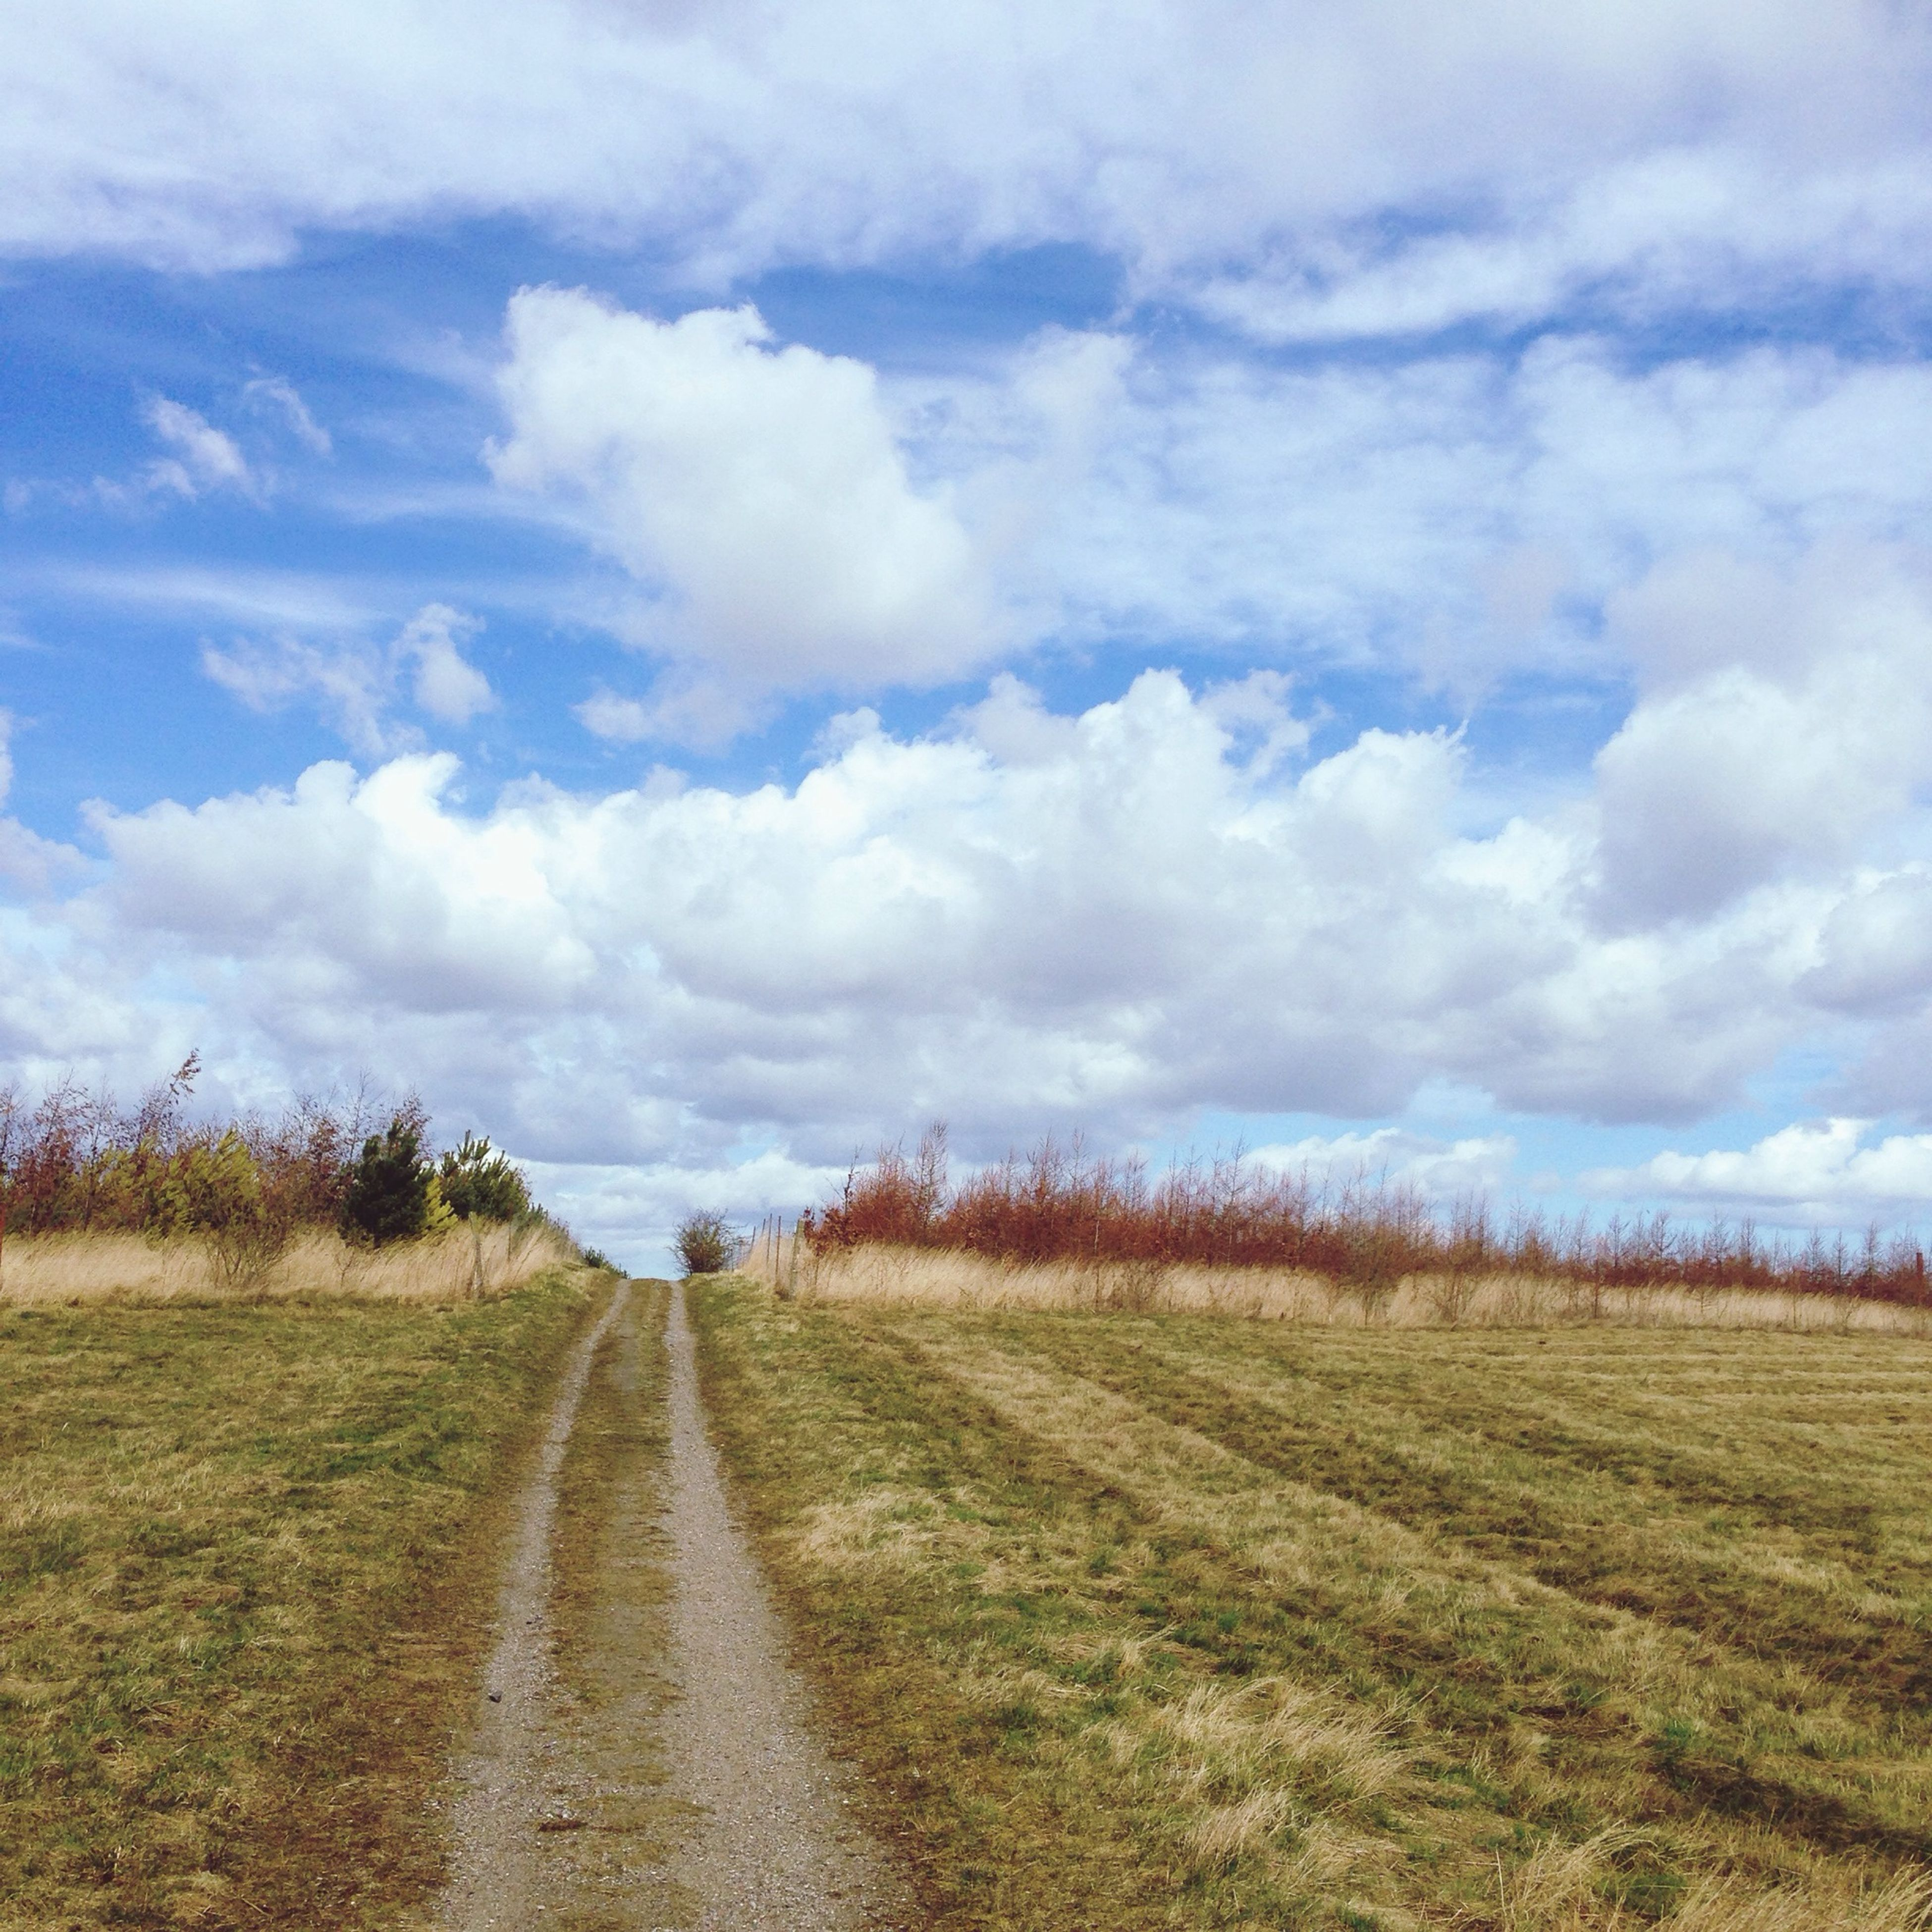 sky, field, landscape, grass, the way forward, cloud - sky, tranquil scene, tranquility, rural scene, agriculture, cloudy, nature, cloud, dirt road, diminishing perspective, scenics, growth, beauty in nature, grassy, farm